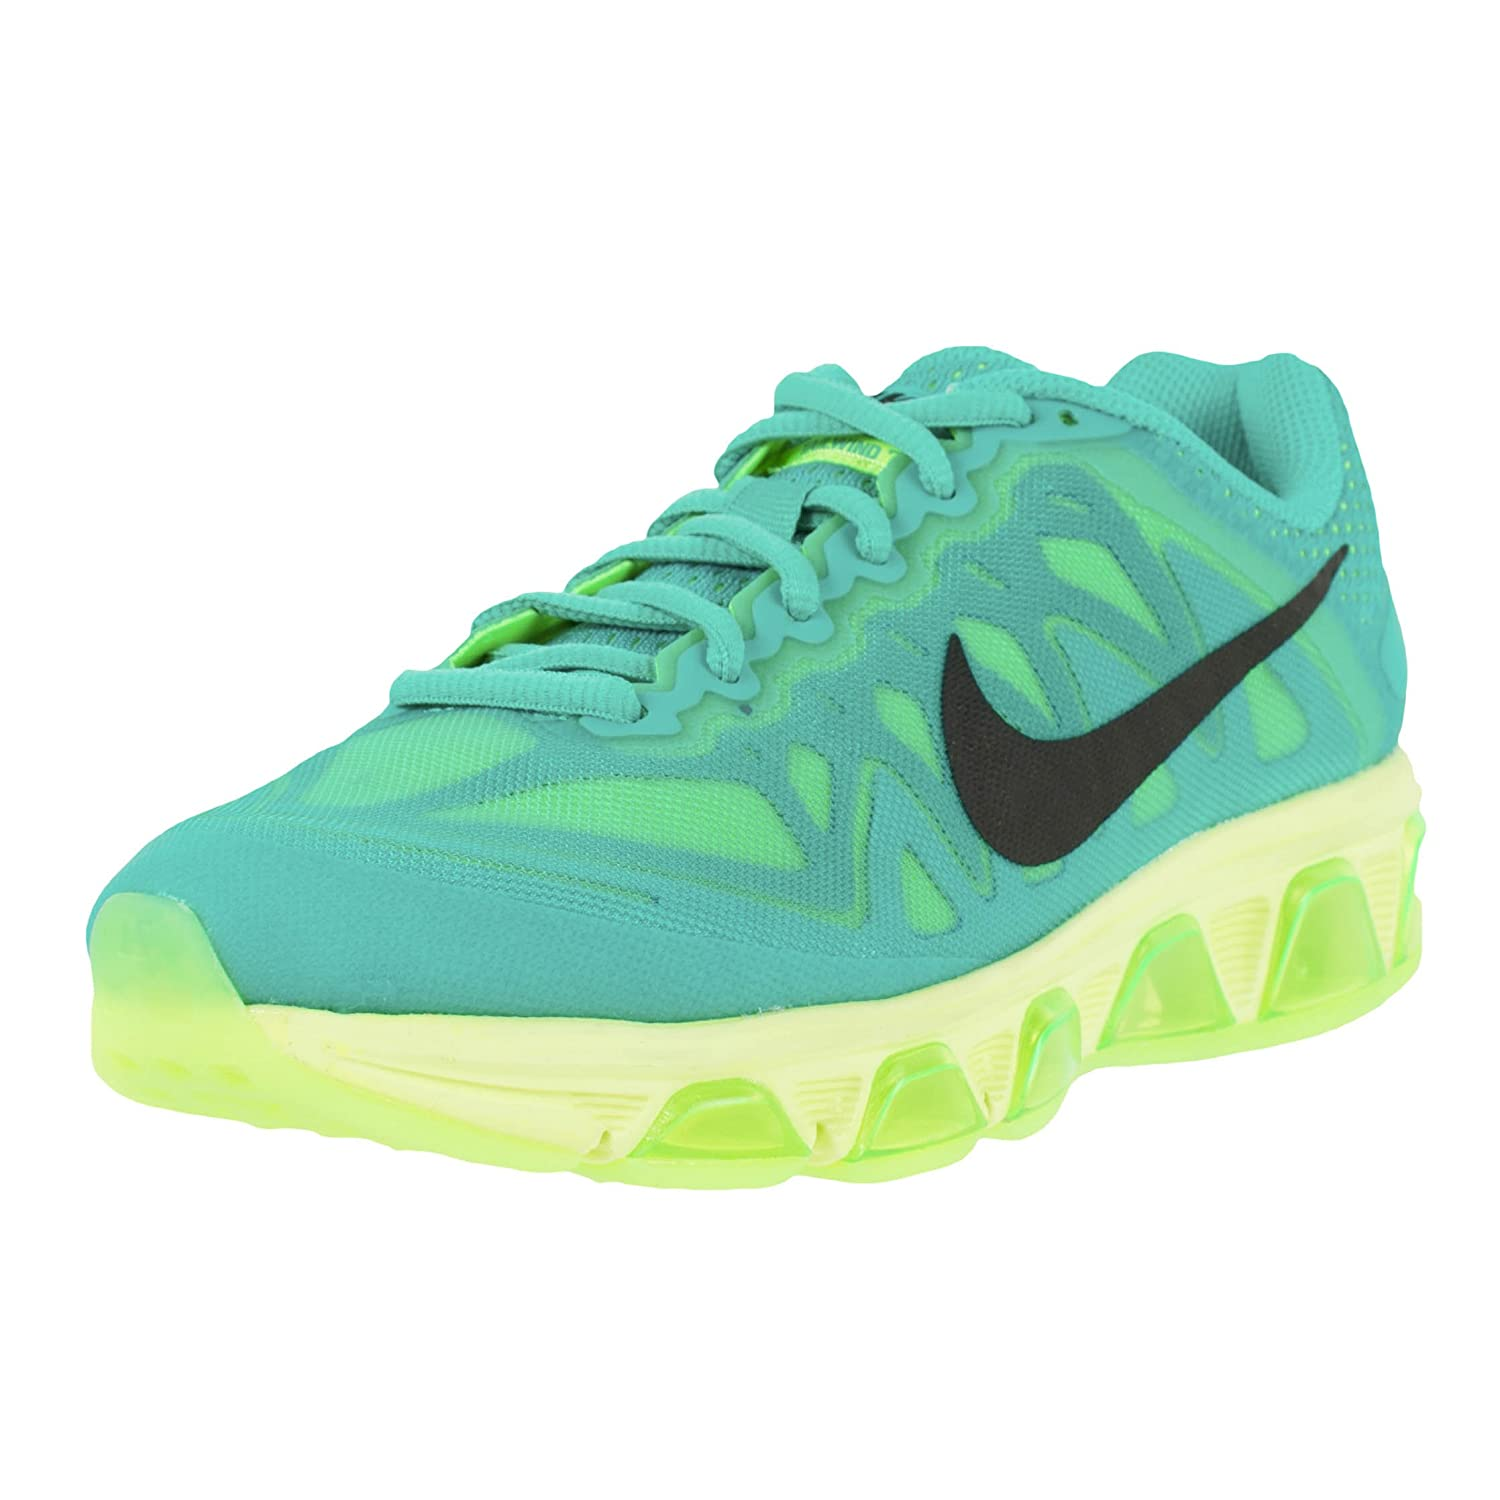 new concept 5d7e9 437bd Nike Womens AIR MAX Tailwind 7 Running Shoes Light Retro Black Lime  683635-400 (6 US)  Amazon.in  Shoes   Handbags